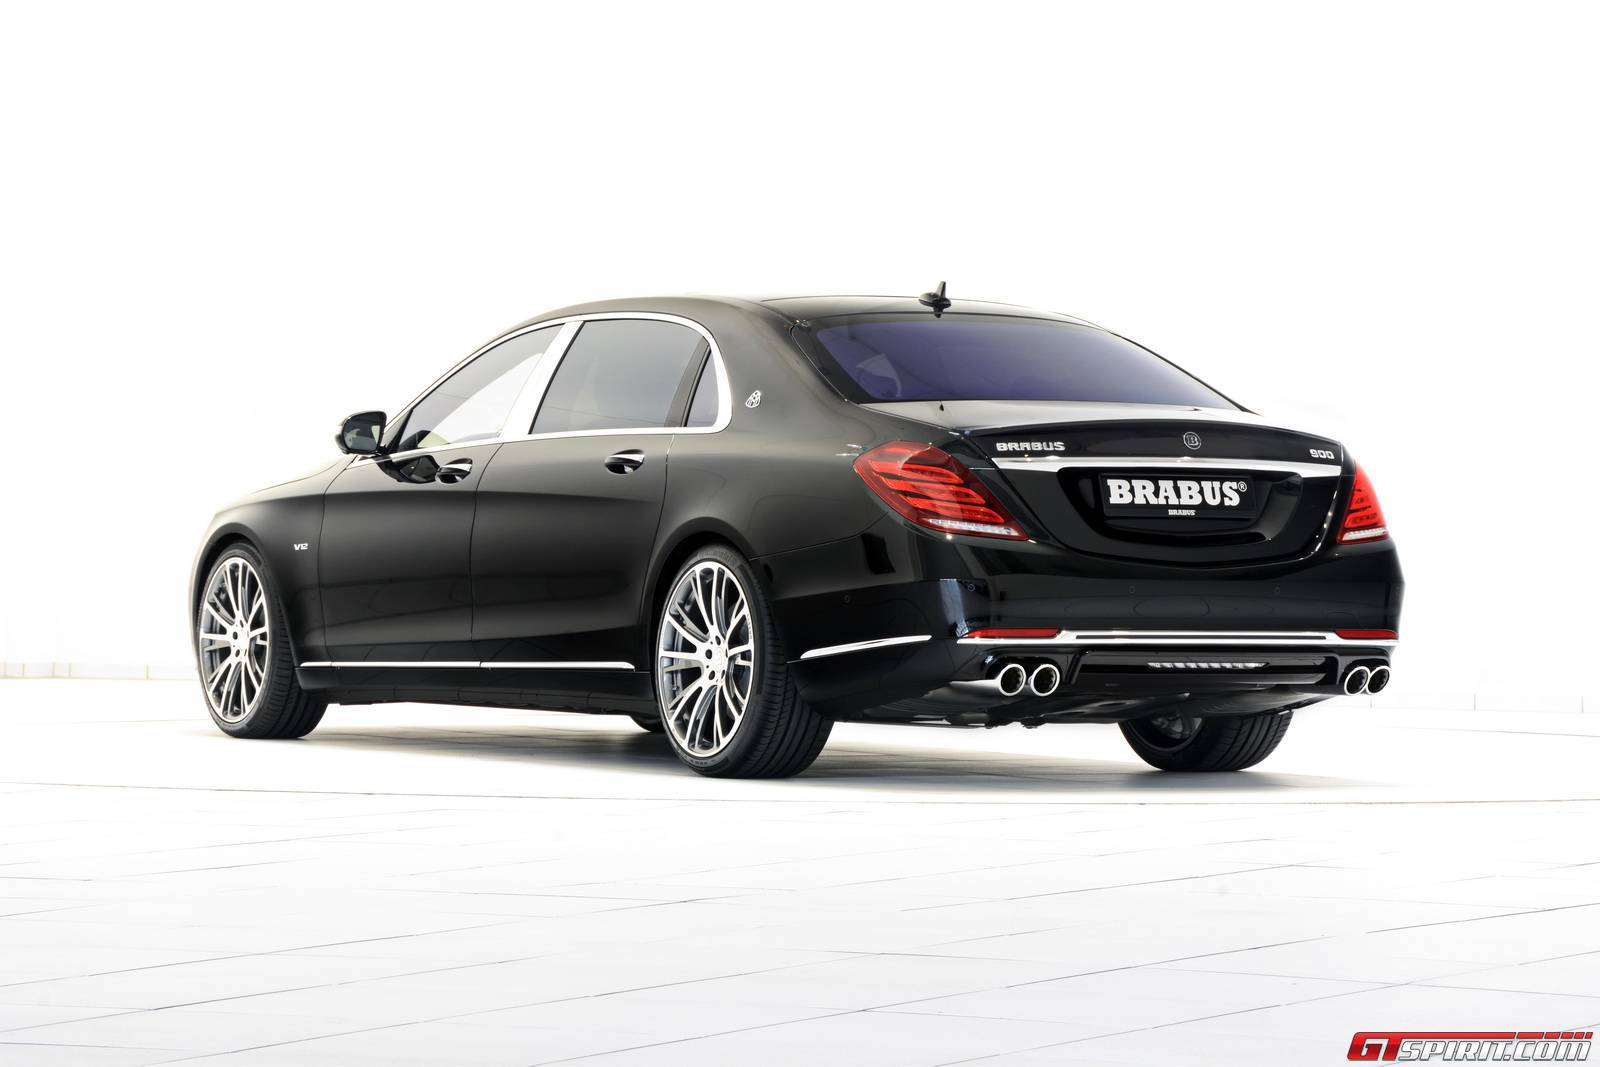 official 900hp mercedes maybach s600 by brabus gtspiritbrabus mercedes maybach s600 · 900hp mercedes maybach s600 by brabus